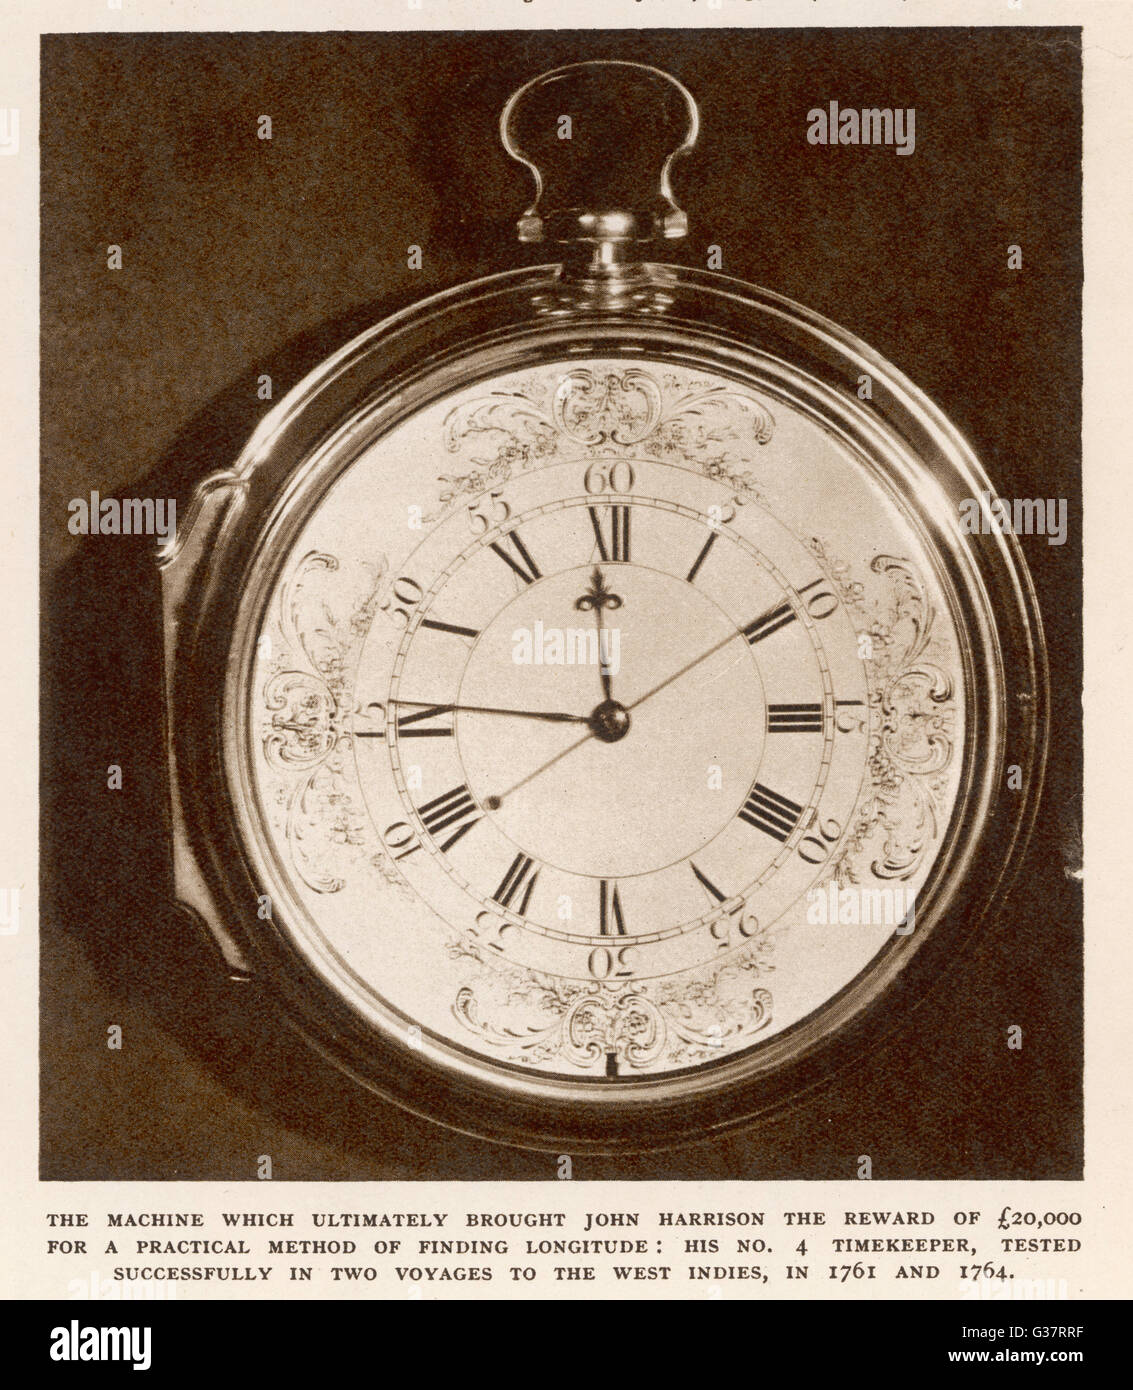 Harrison's number 4 timekeeper  or chronometer for finding  longitude.       Date: circa 1760 - Stock Image